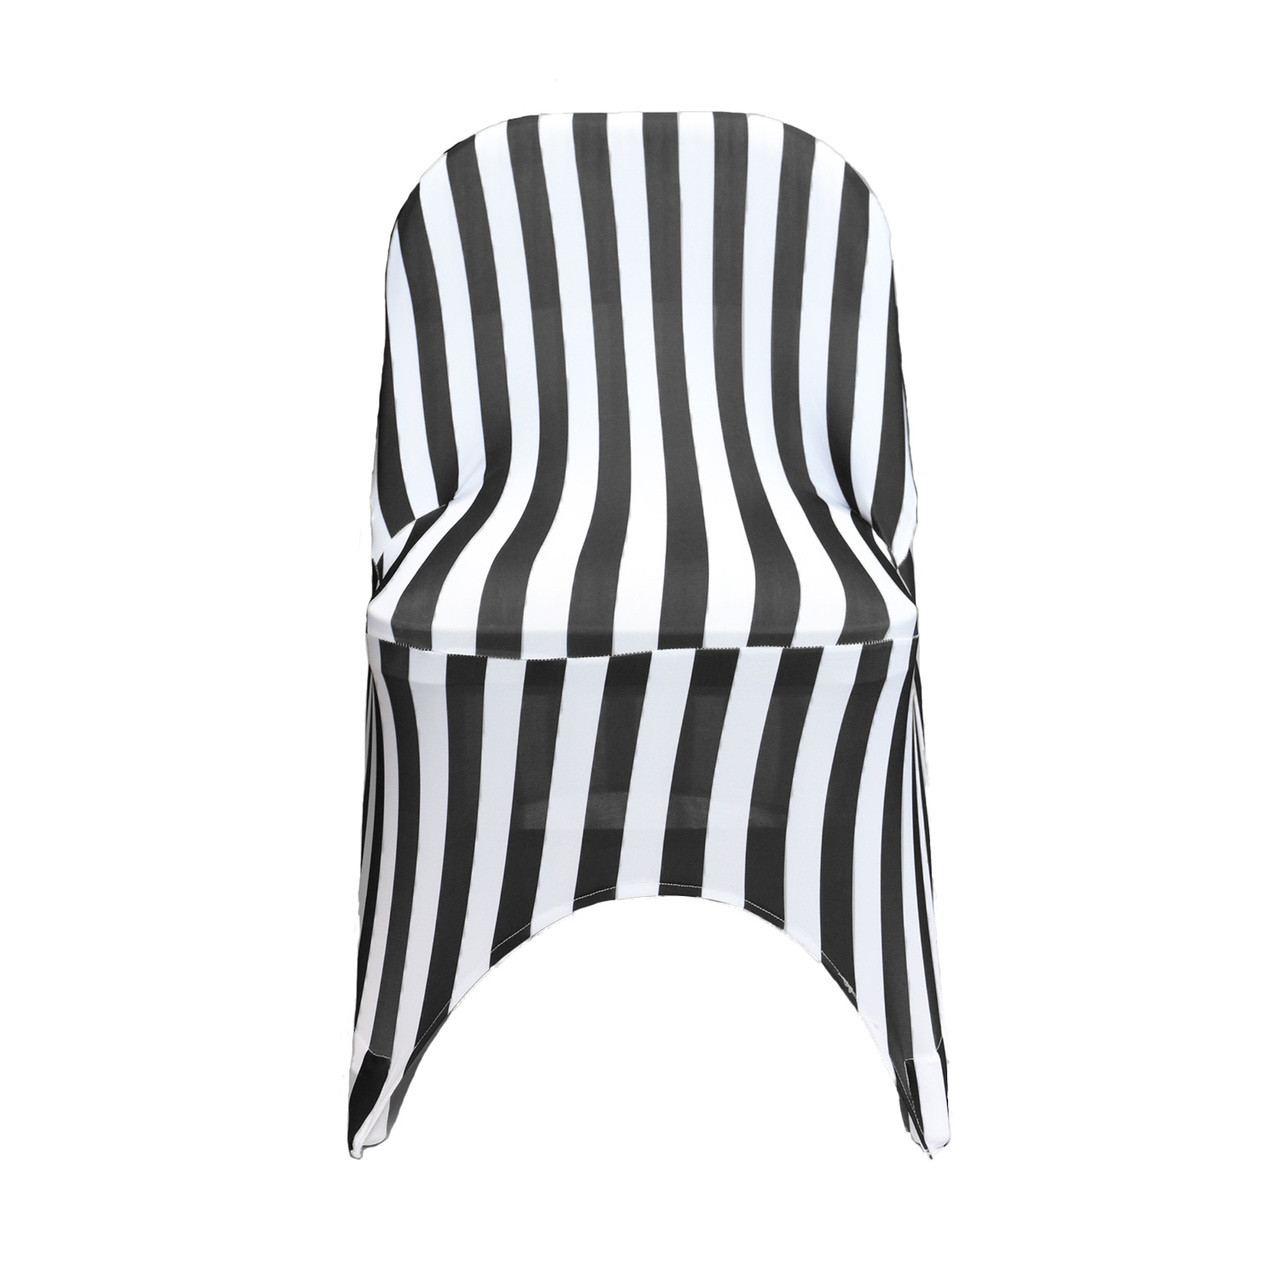 Pleasing Stretch Spandex Folding Chair Covers Striped Black And White Pack Of 6 Unemploymentrelief Wooden Chair Designs For Living Room Unemploymentrelieforg